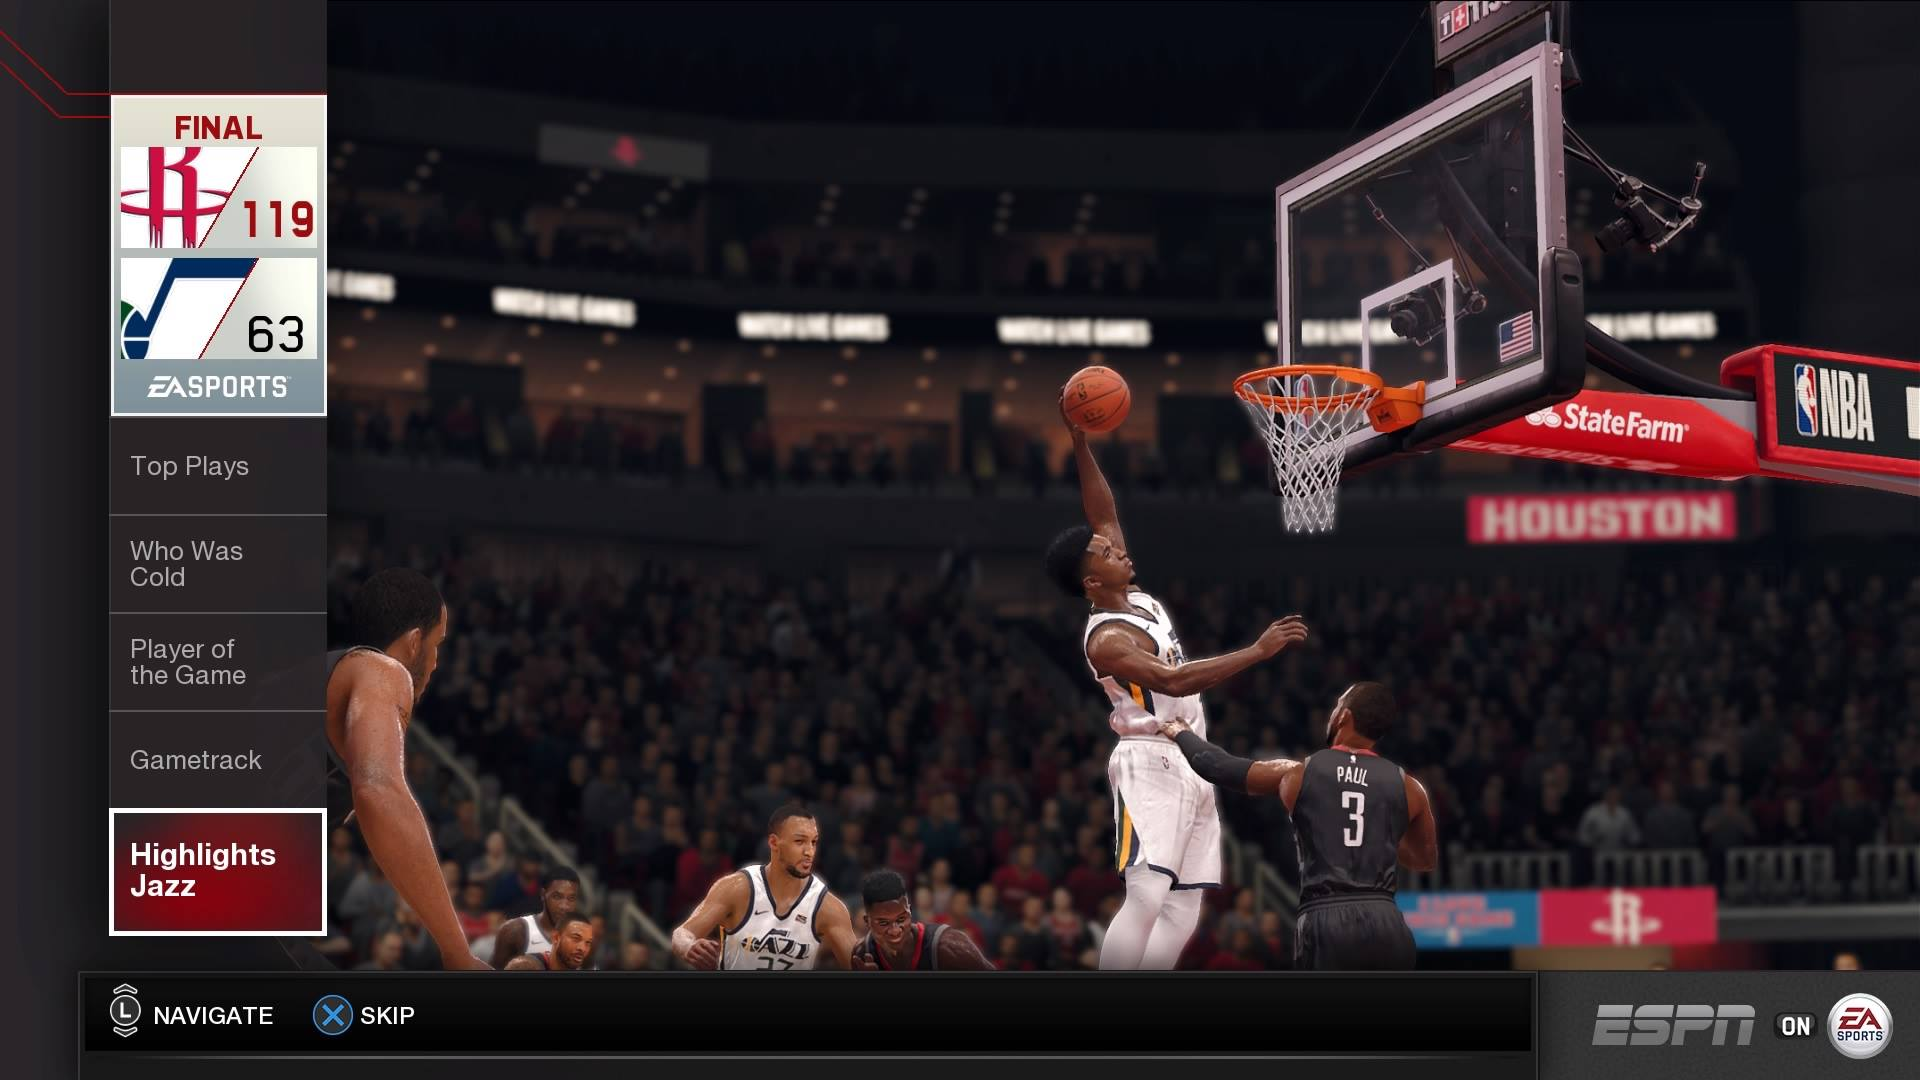 Sim Life with 'NBA LIVE 18': Jazz at Rockets, Pelicans at Warriors — The Undefeated